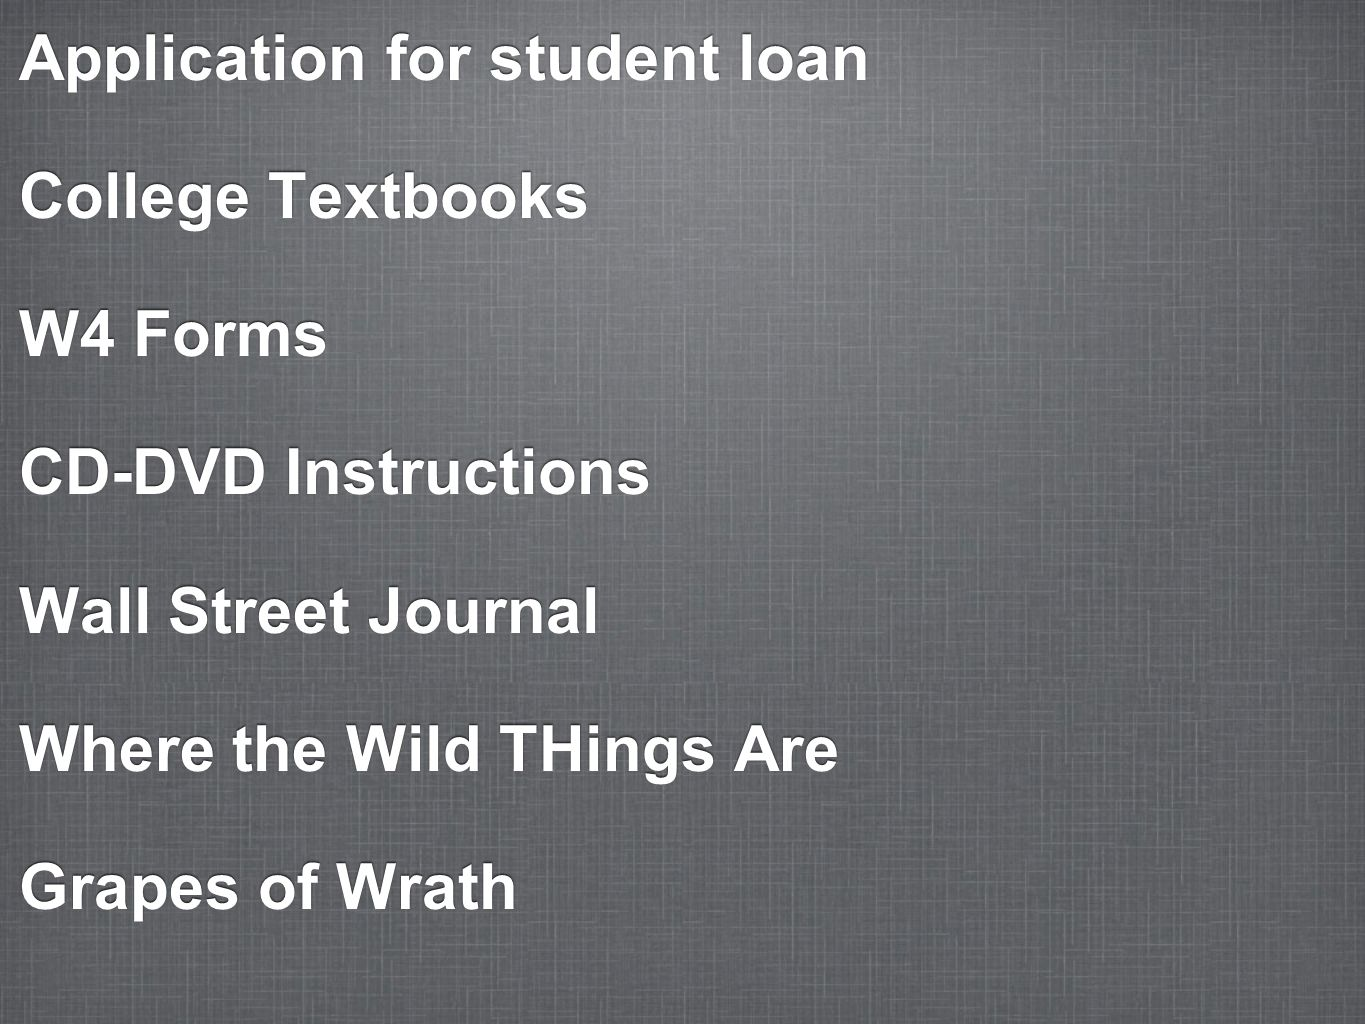 Application for student loan College Textbooks W4 Forms CD-DVD Instructions Wall Street Journal Where the Wild THings Are Grapes of Wrath